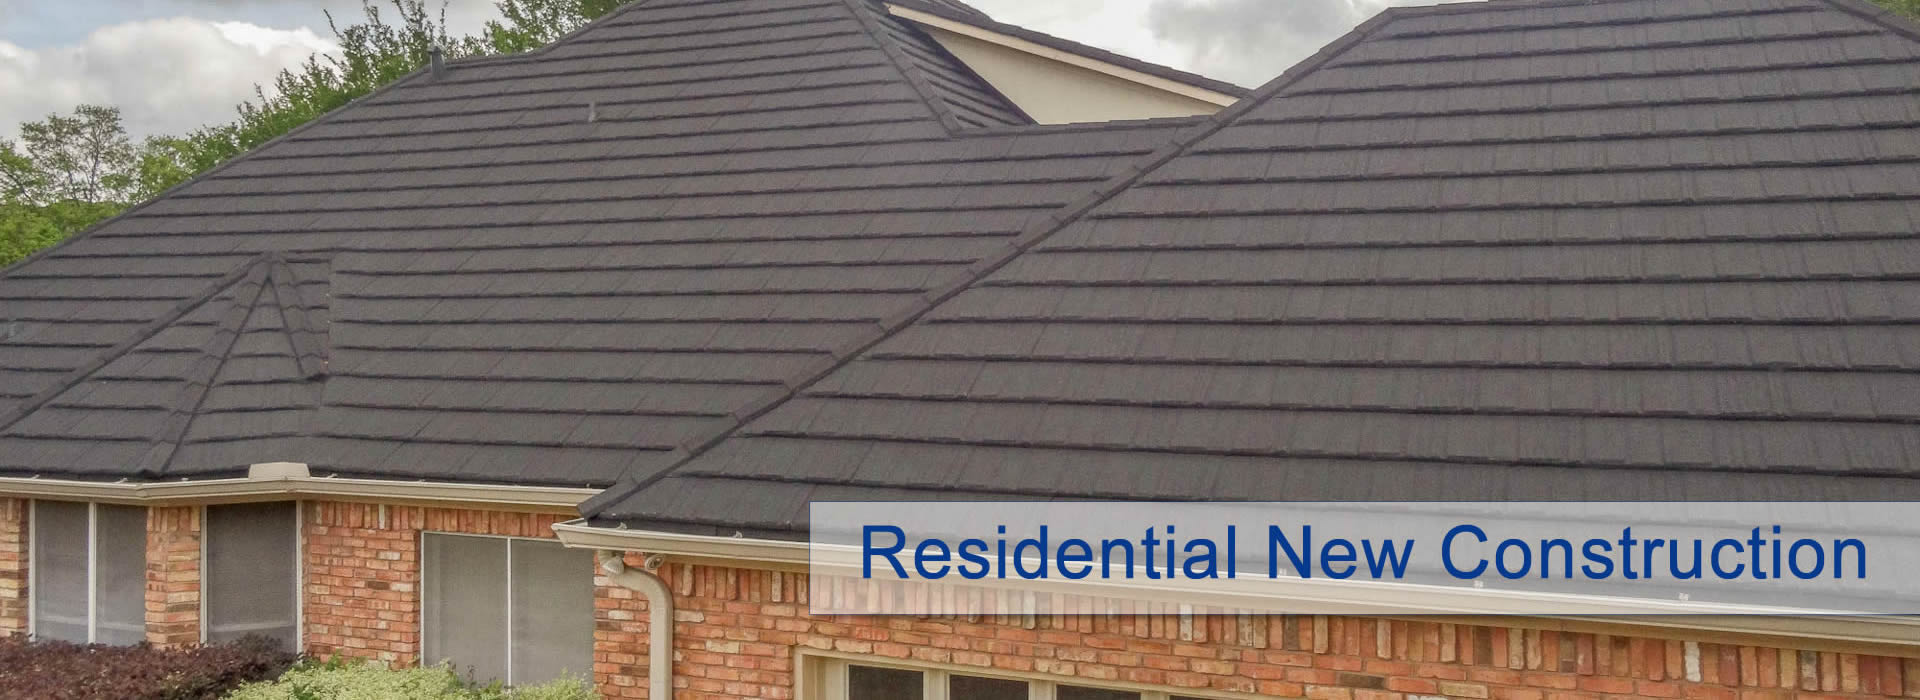 Residential New Construction Roofing